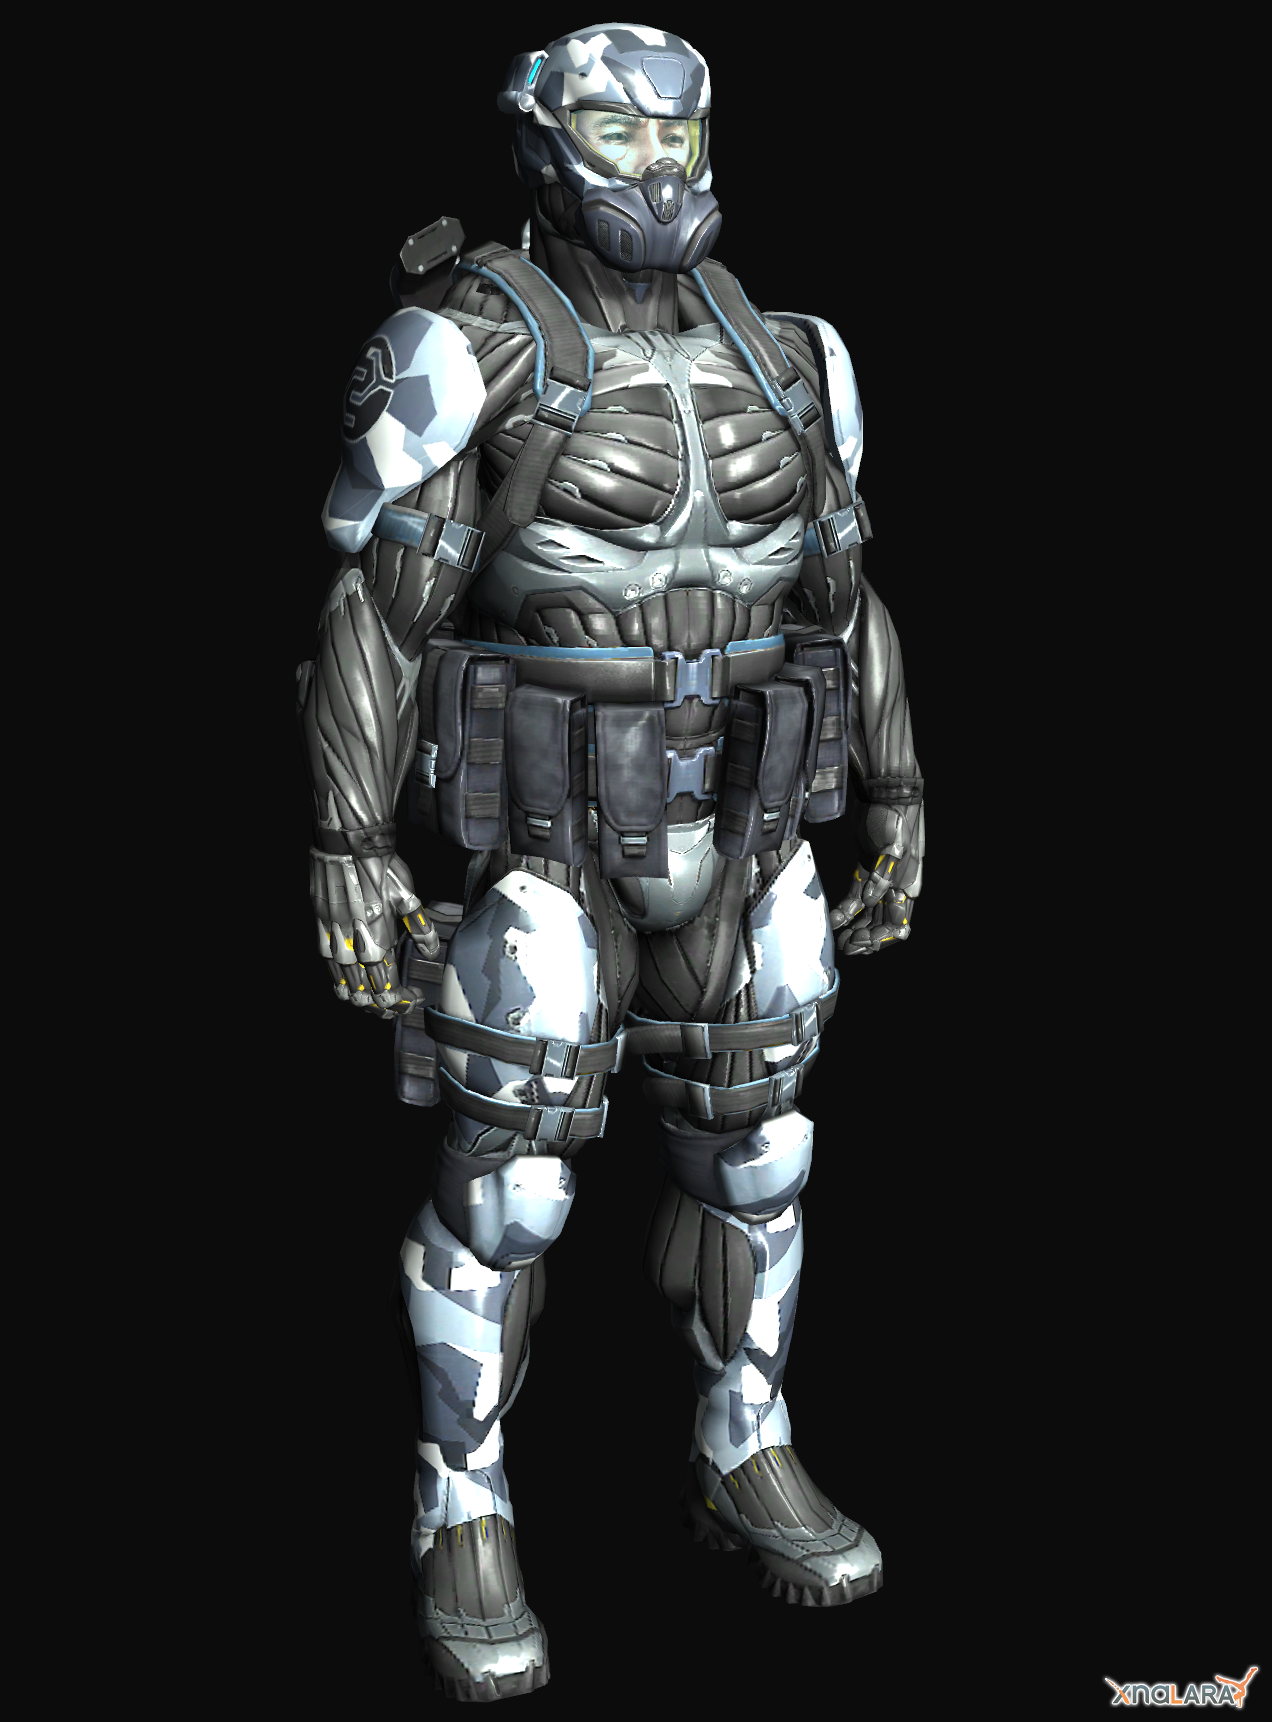 Crysis 3 Armor | Crysis Cell